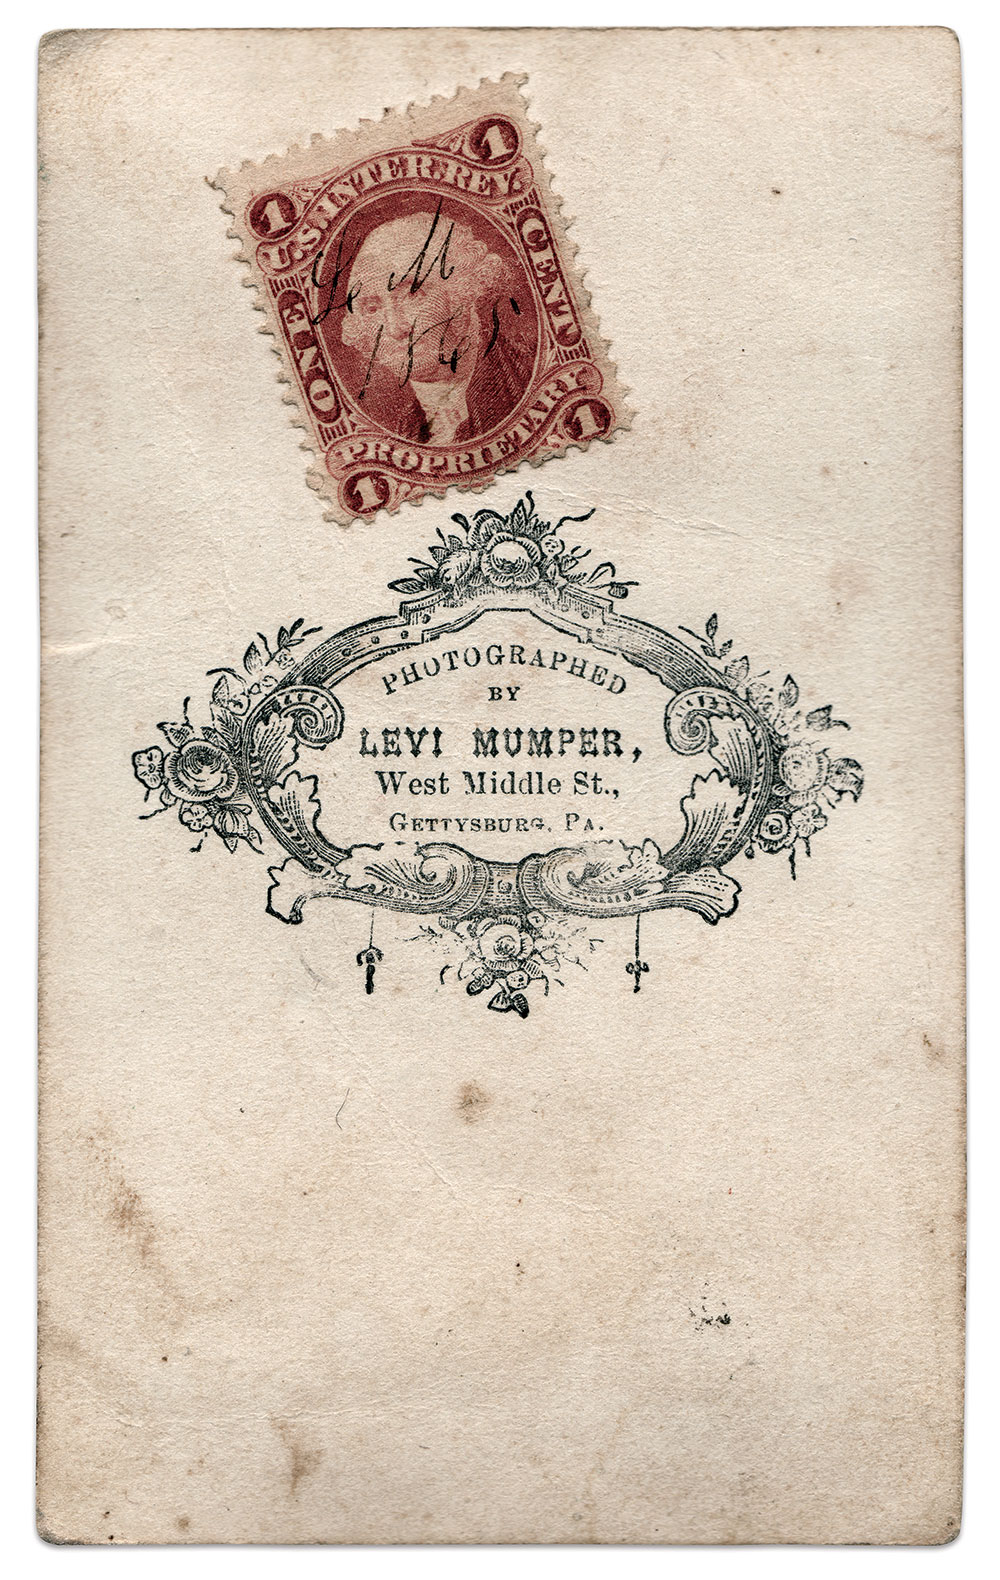 Mumper's imprint, and a tax stamp hand-cancelled with his initials and 1865 date on the back of the carte de visite mount. Author's Collection.